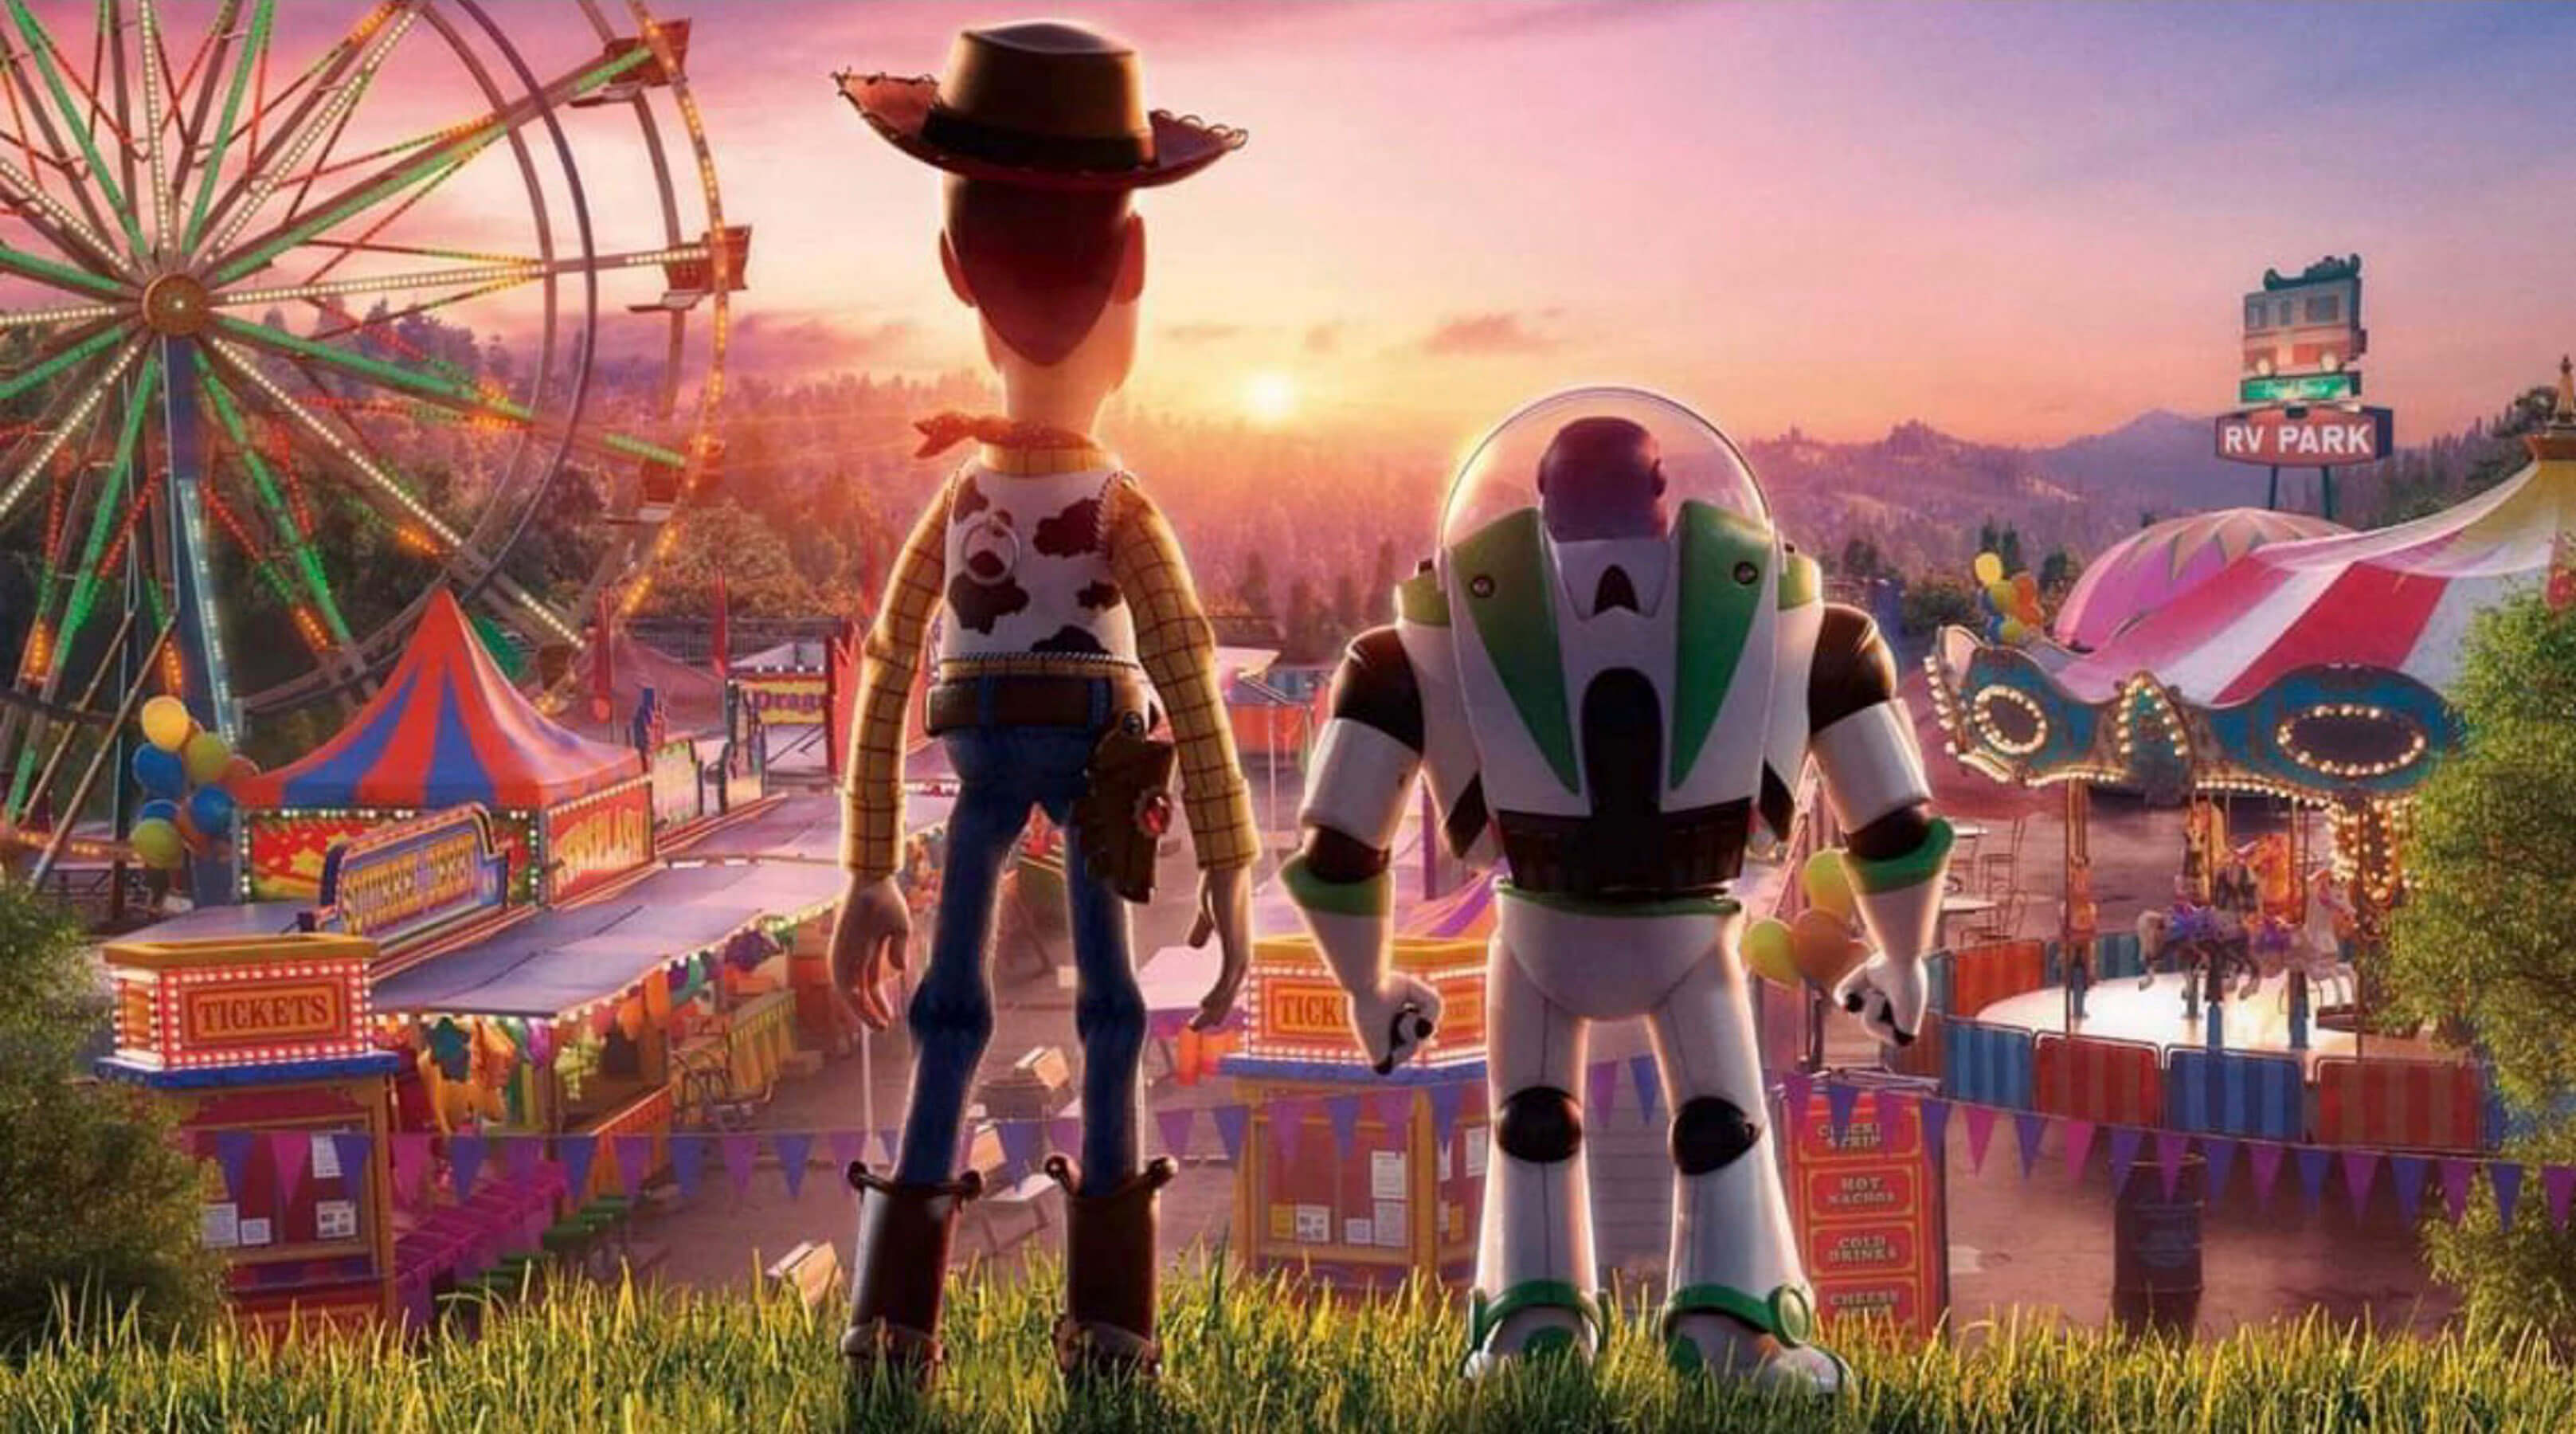 toy-story-4-woody-and-buzz-lightyear